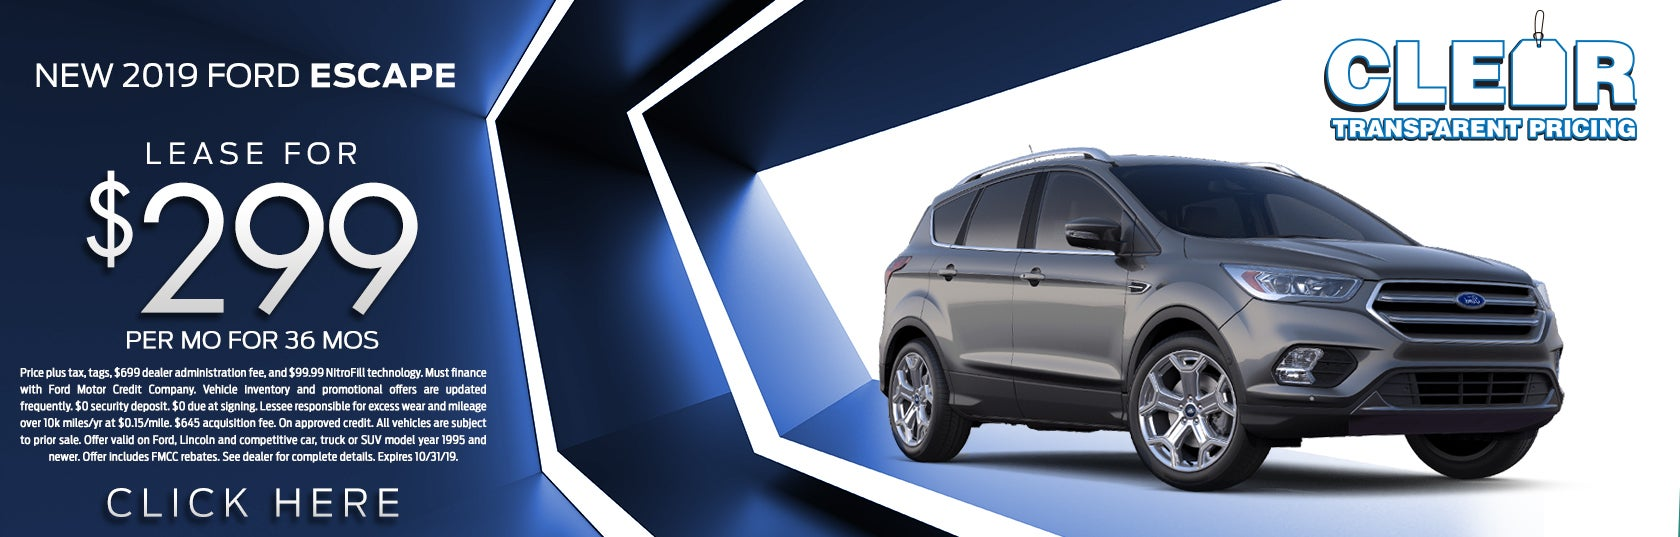 Ford Dealership Charlotte >> Ford Dealer In Charlotte Nc Used Cars Charlotte Capital